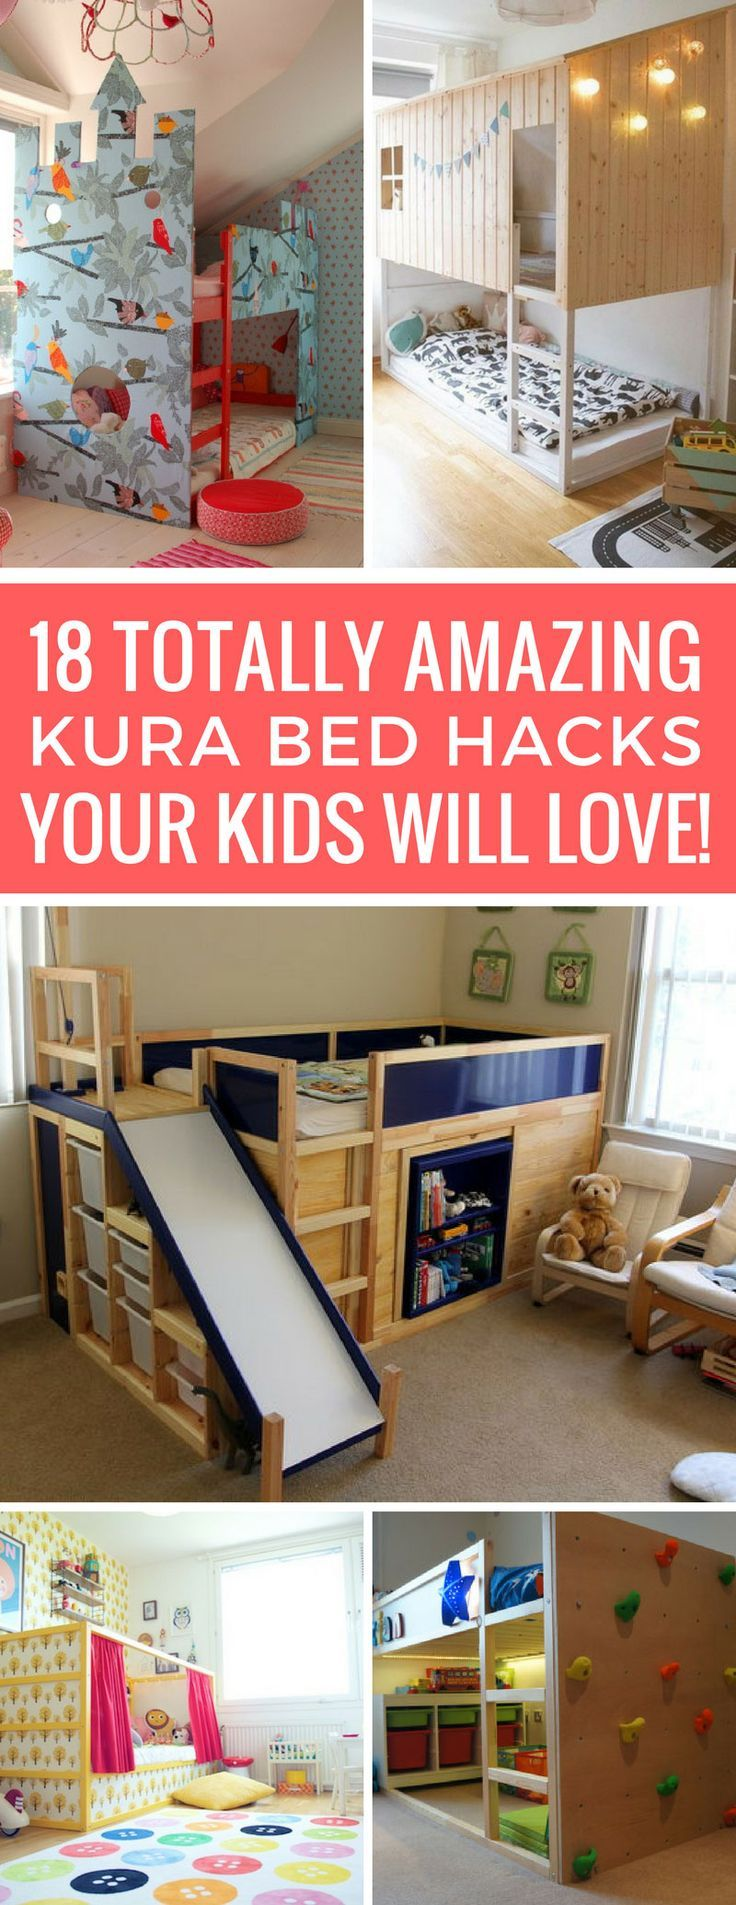 18 Amazing KURA Bed Hacks to Turn a Boring Bed into Something Special!